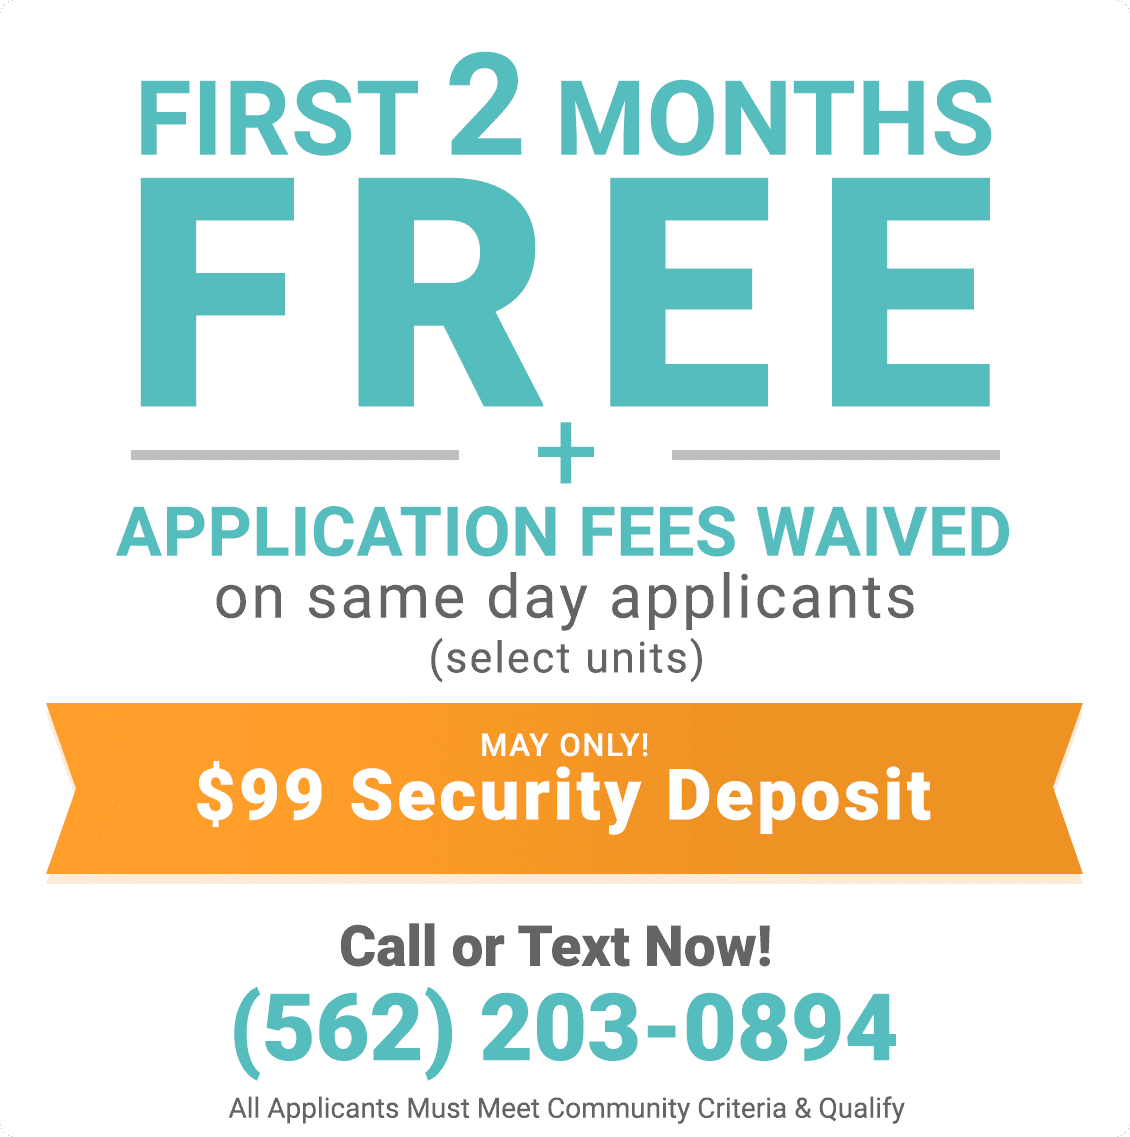 First 2 months free only during May